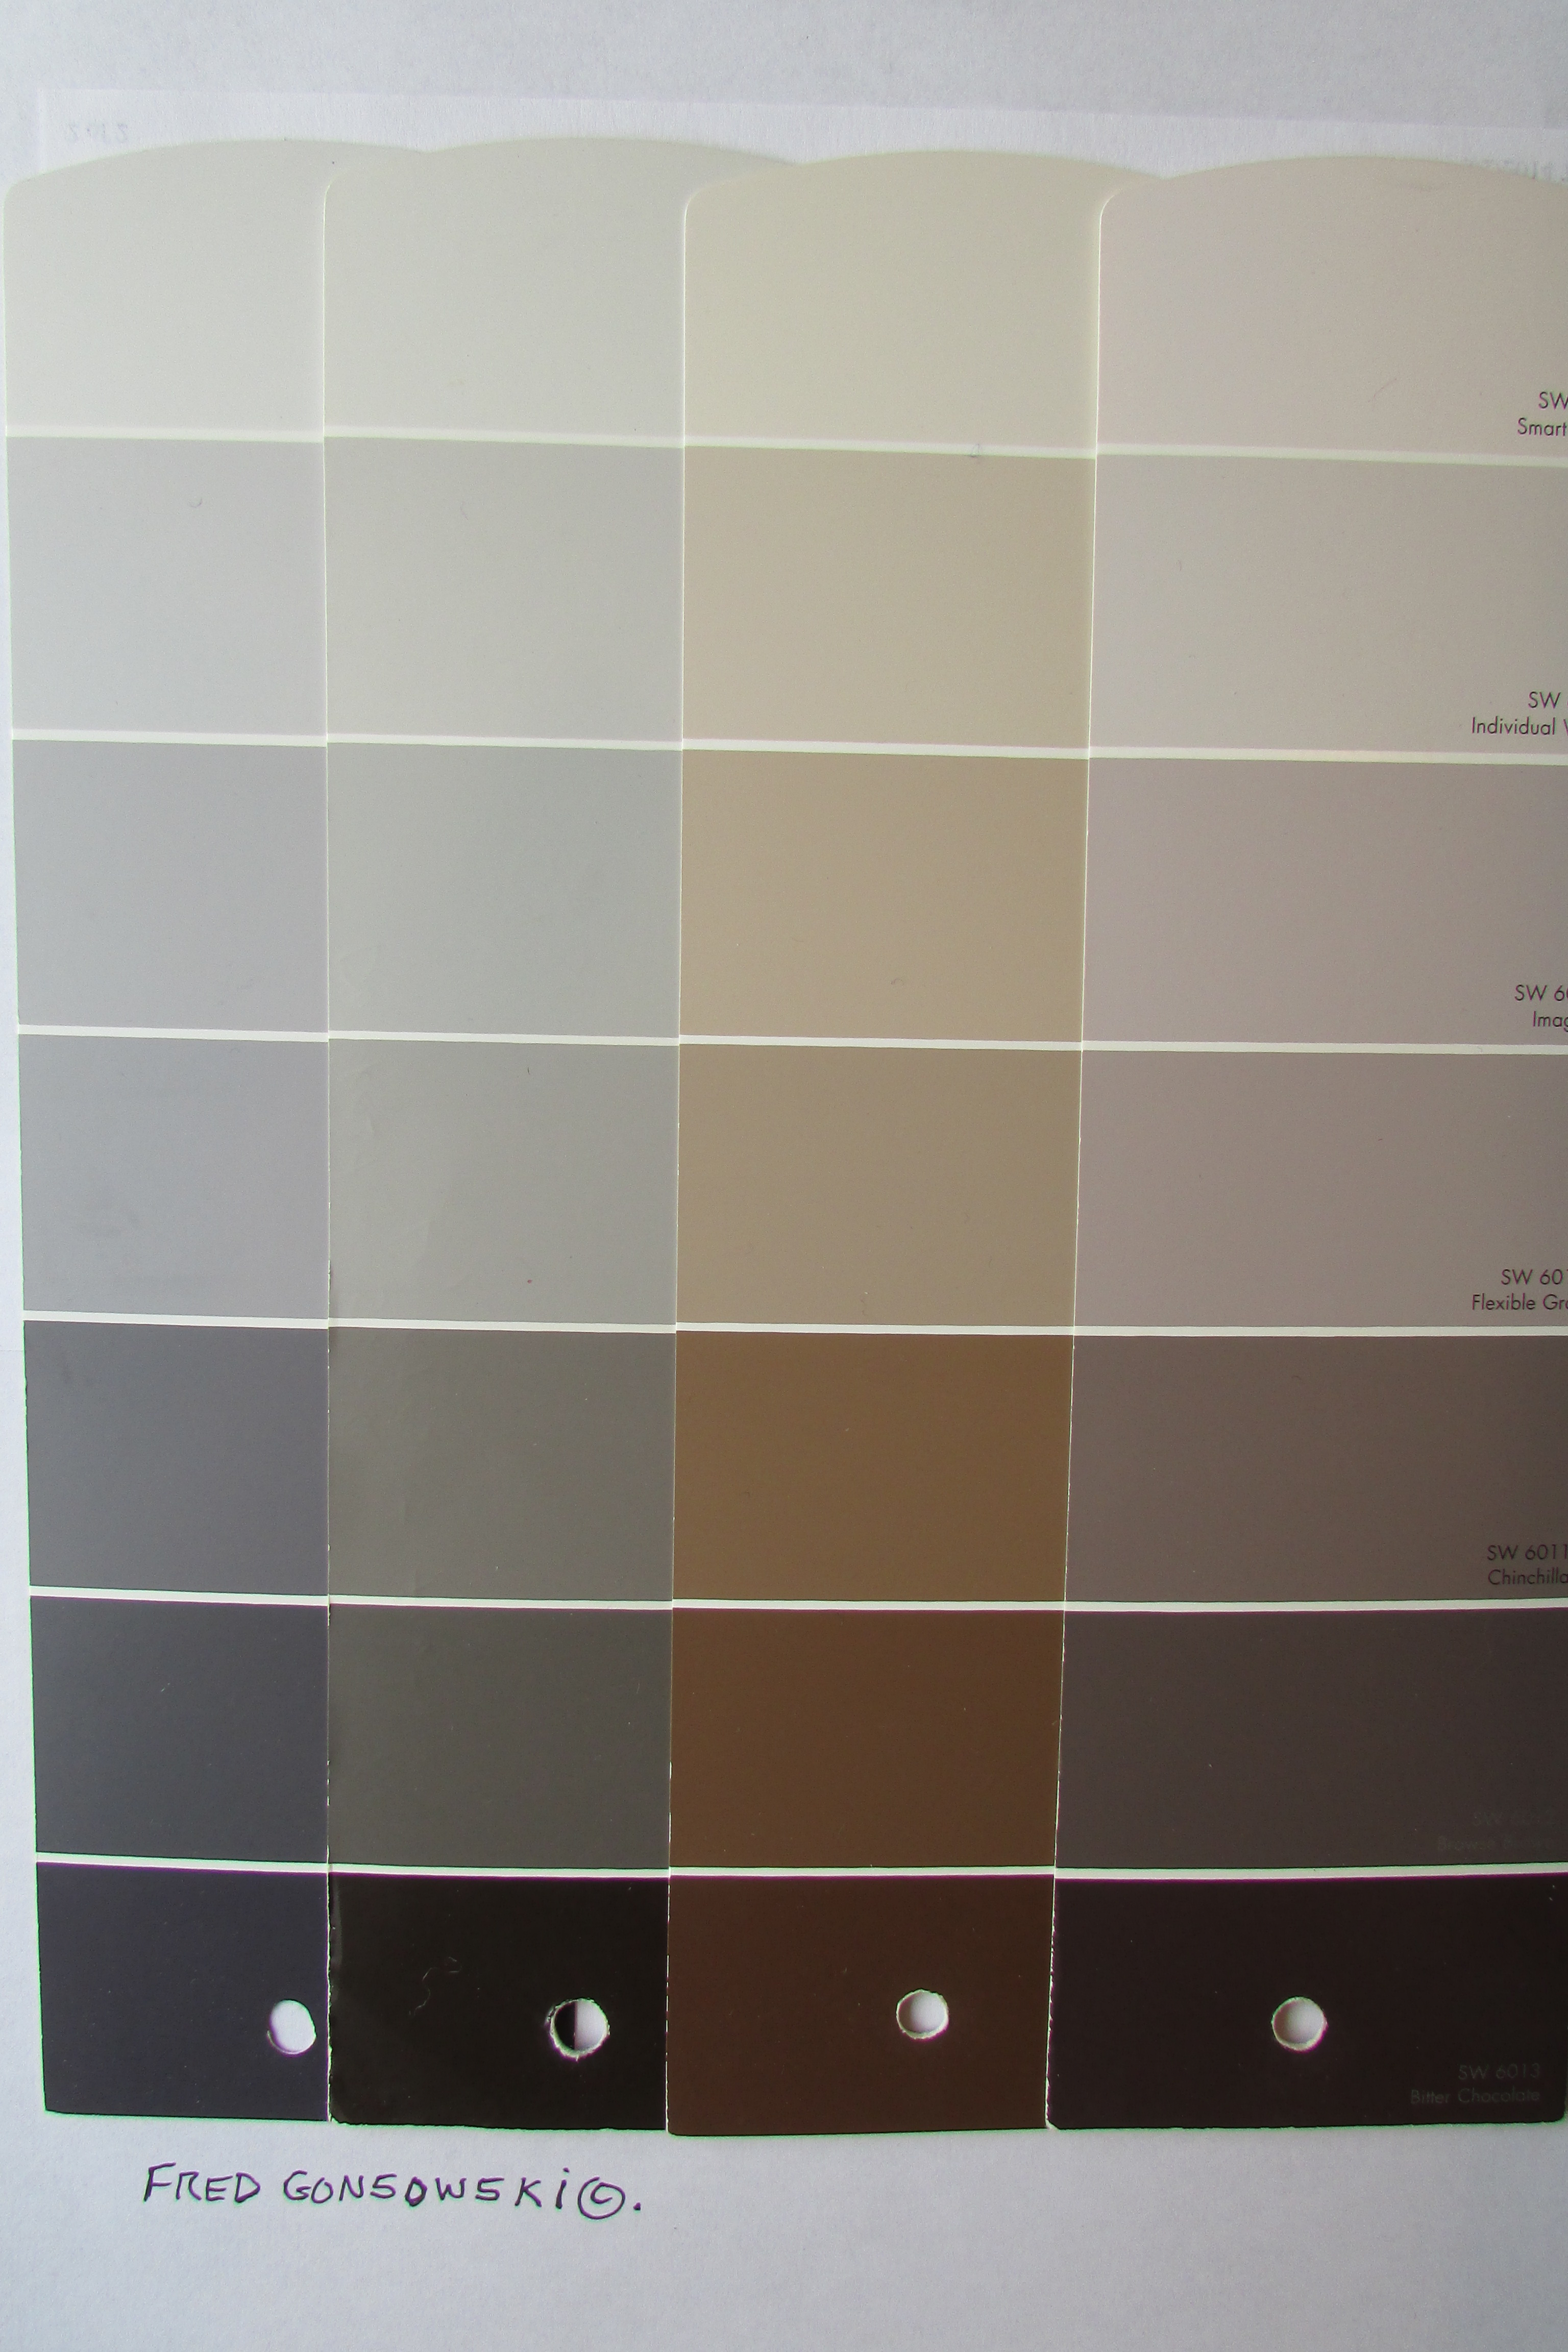 Shades of the color grey shades of the color grey alluring 50 shades of entrepreneurship Pick paint colors